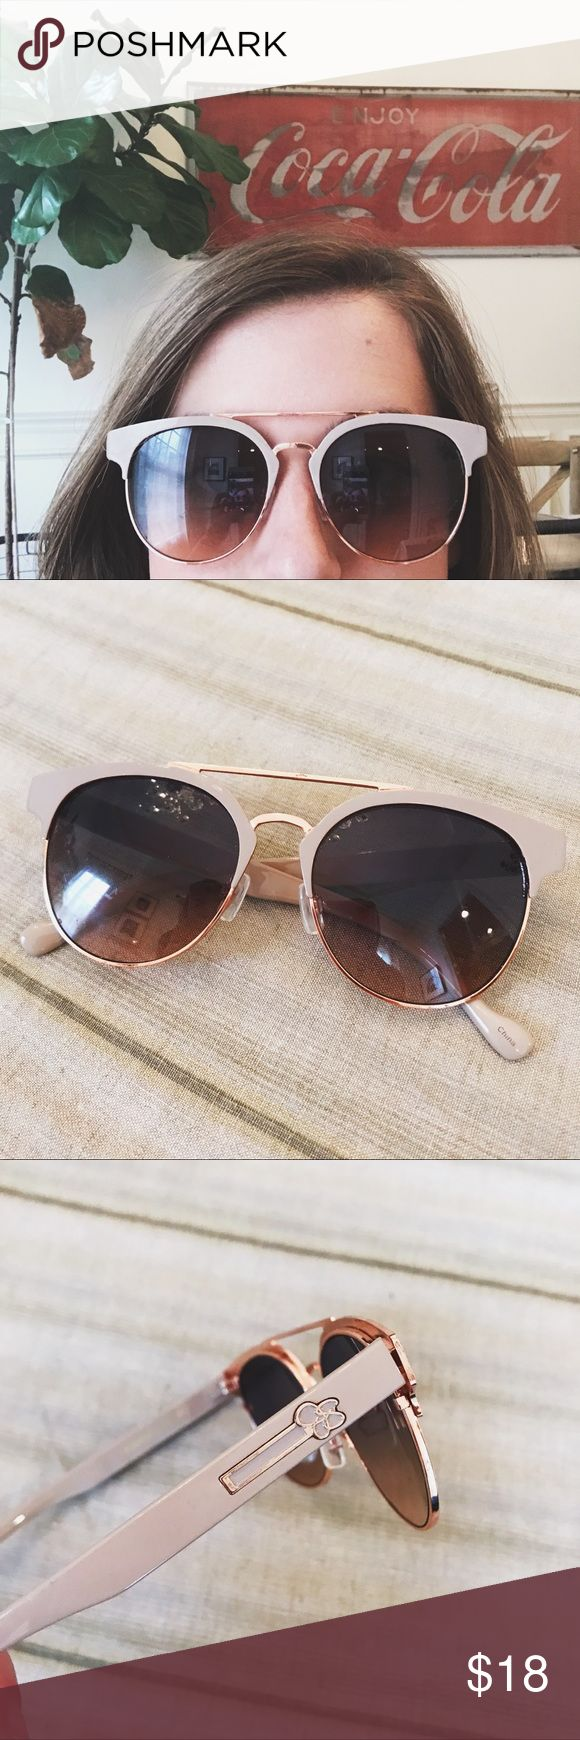 Jessica Simpson Rose Gold Sunglasses Jessica Simpson brand super cute sunglasses. Rose gold metal and blush colored frames. Excellent condition! Jessica Simpson Accessories Sunglasses